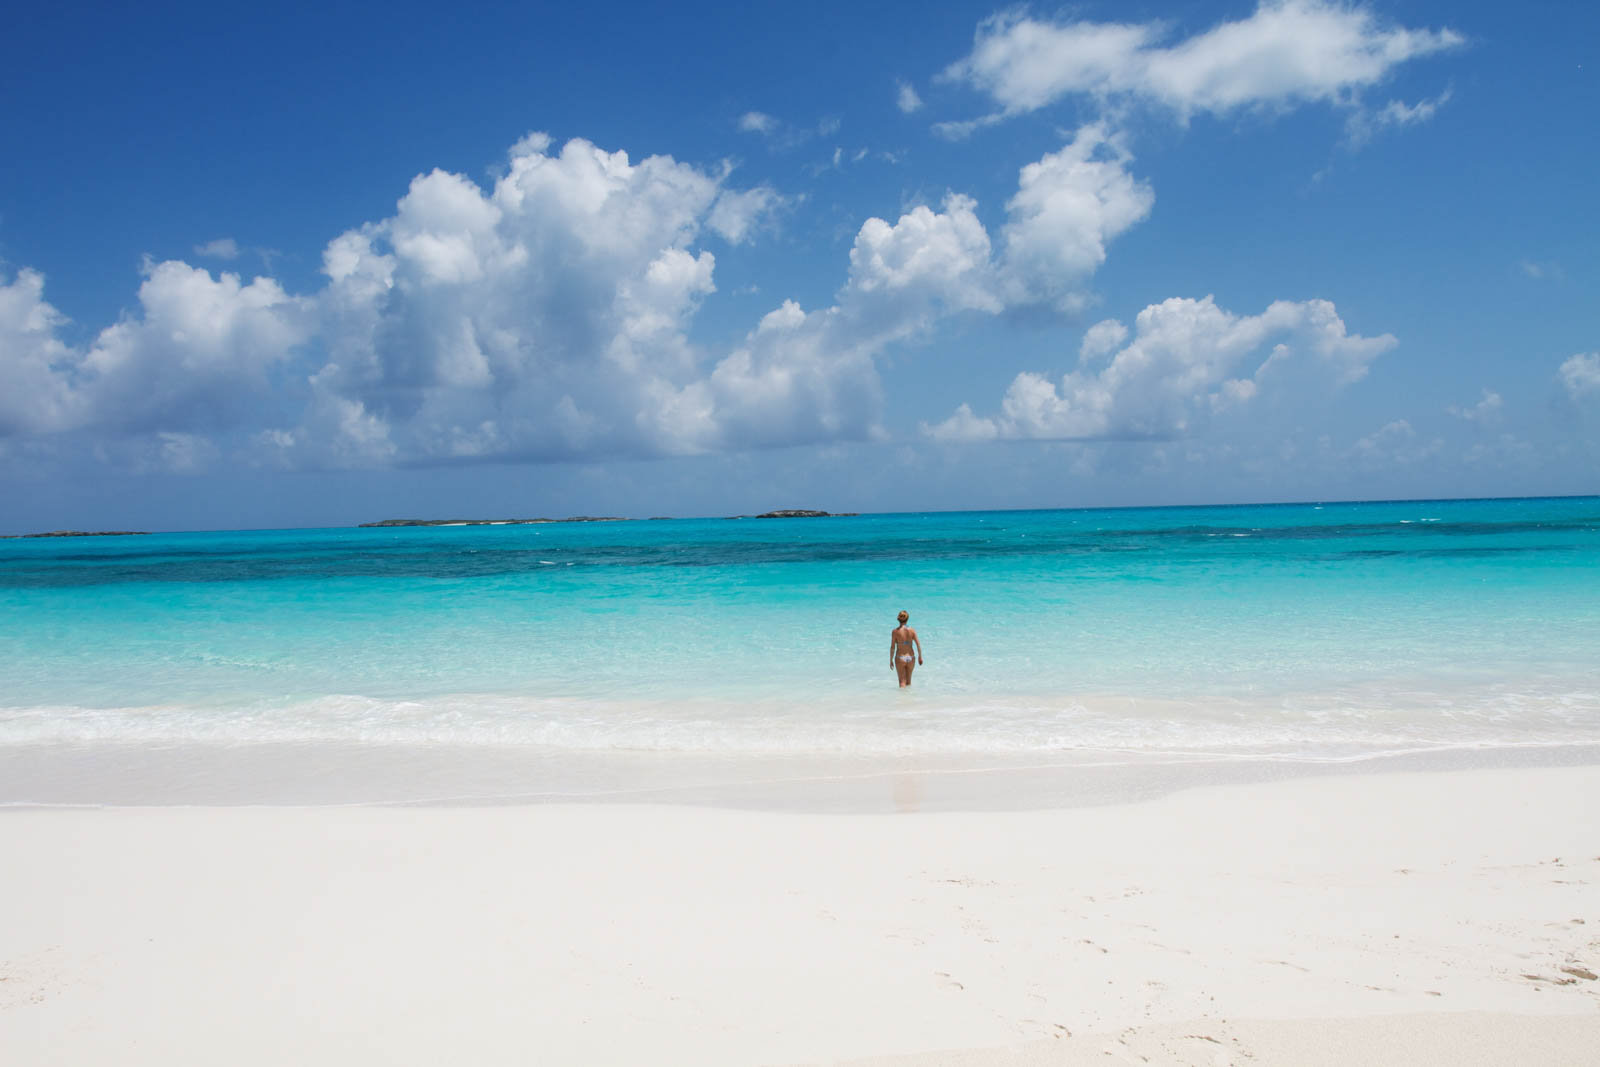 Take the boat from Miami to Bahamas to these beautiful beaches. The boat ride from Miami to Bahamas takes much longer than a Bahamas day trip by plane.